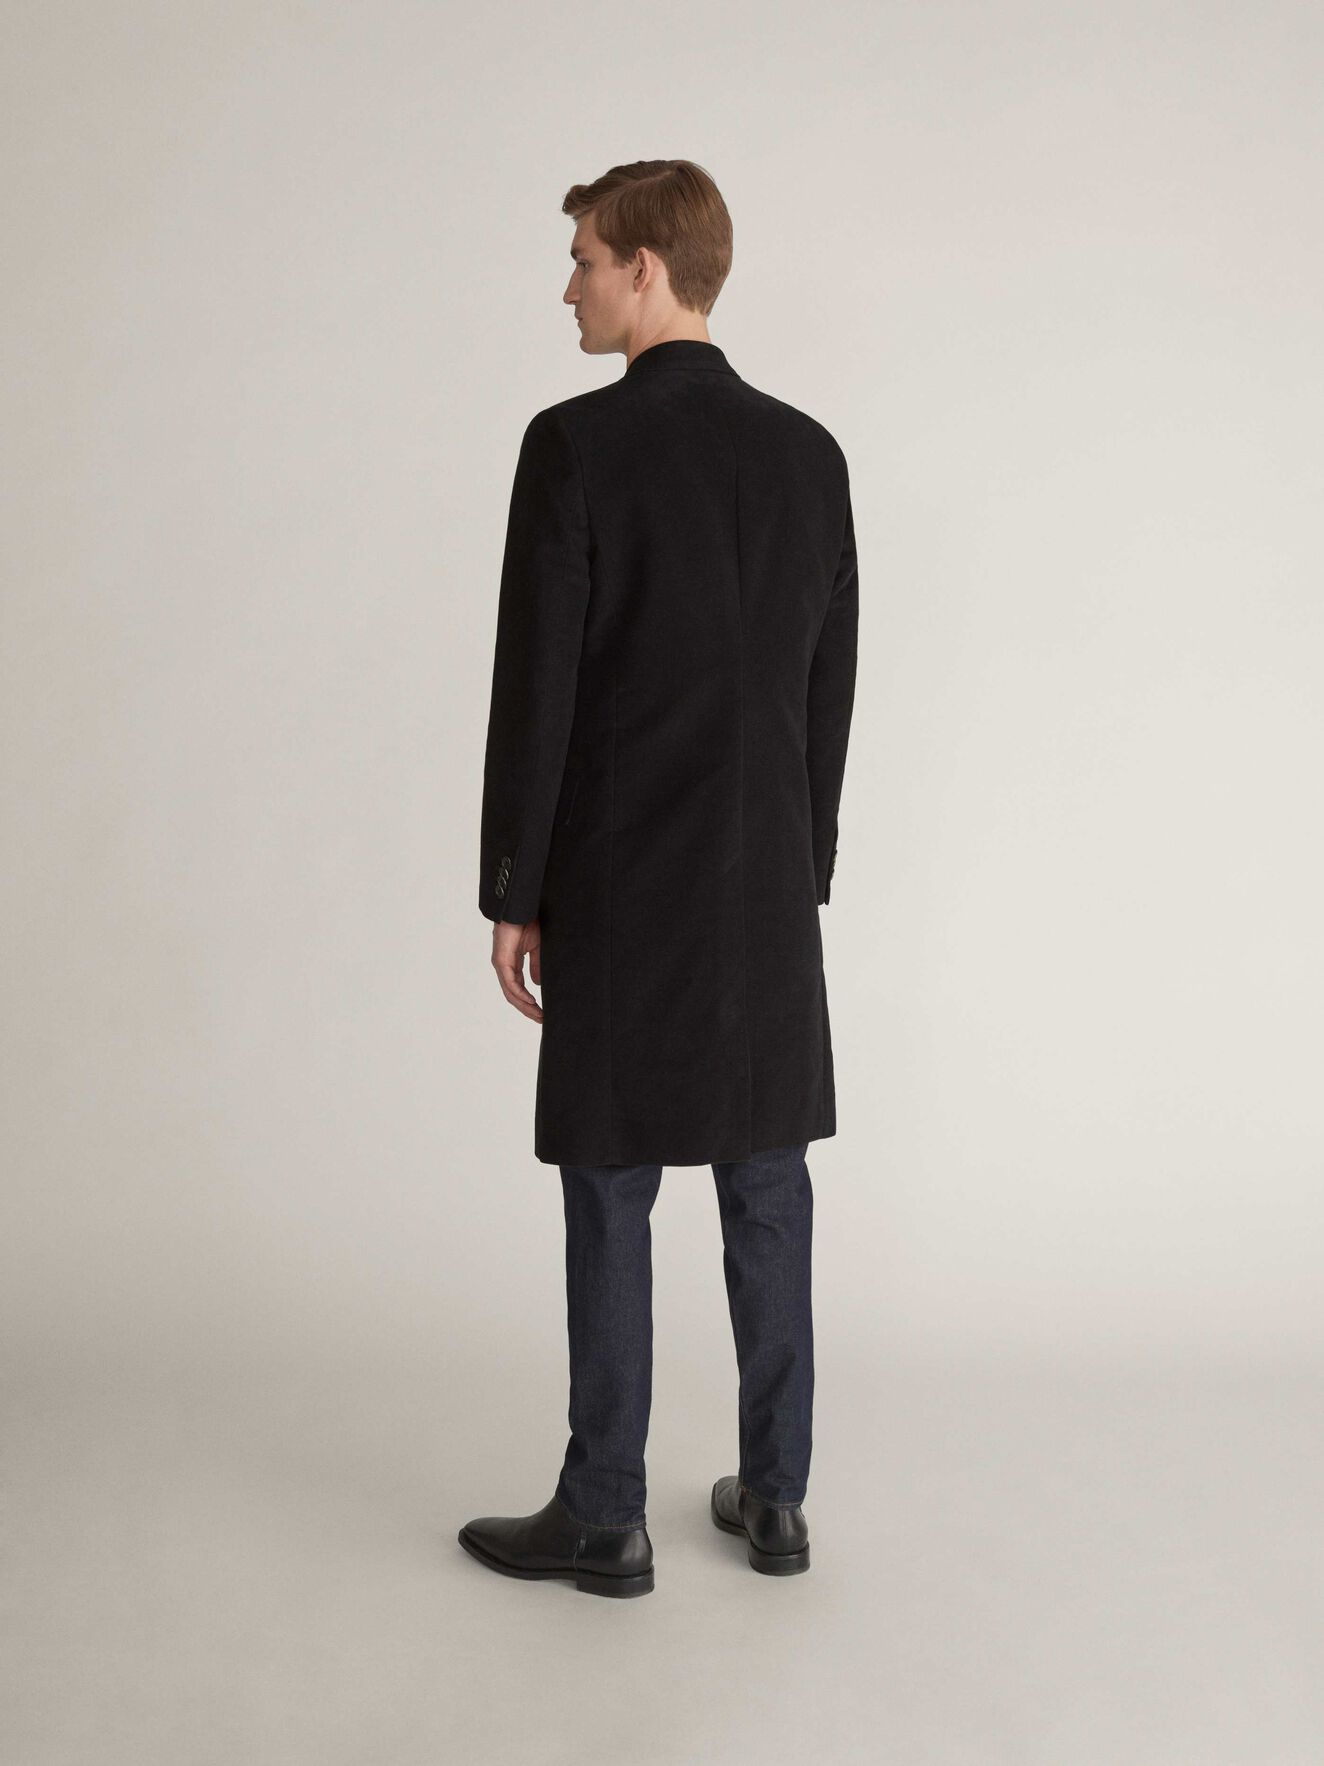 Coltron Coat in Black from Tiger of Sweden